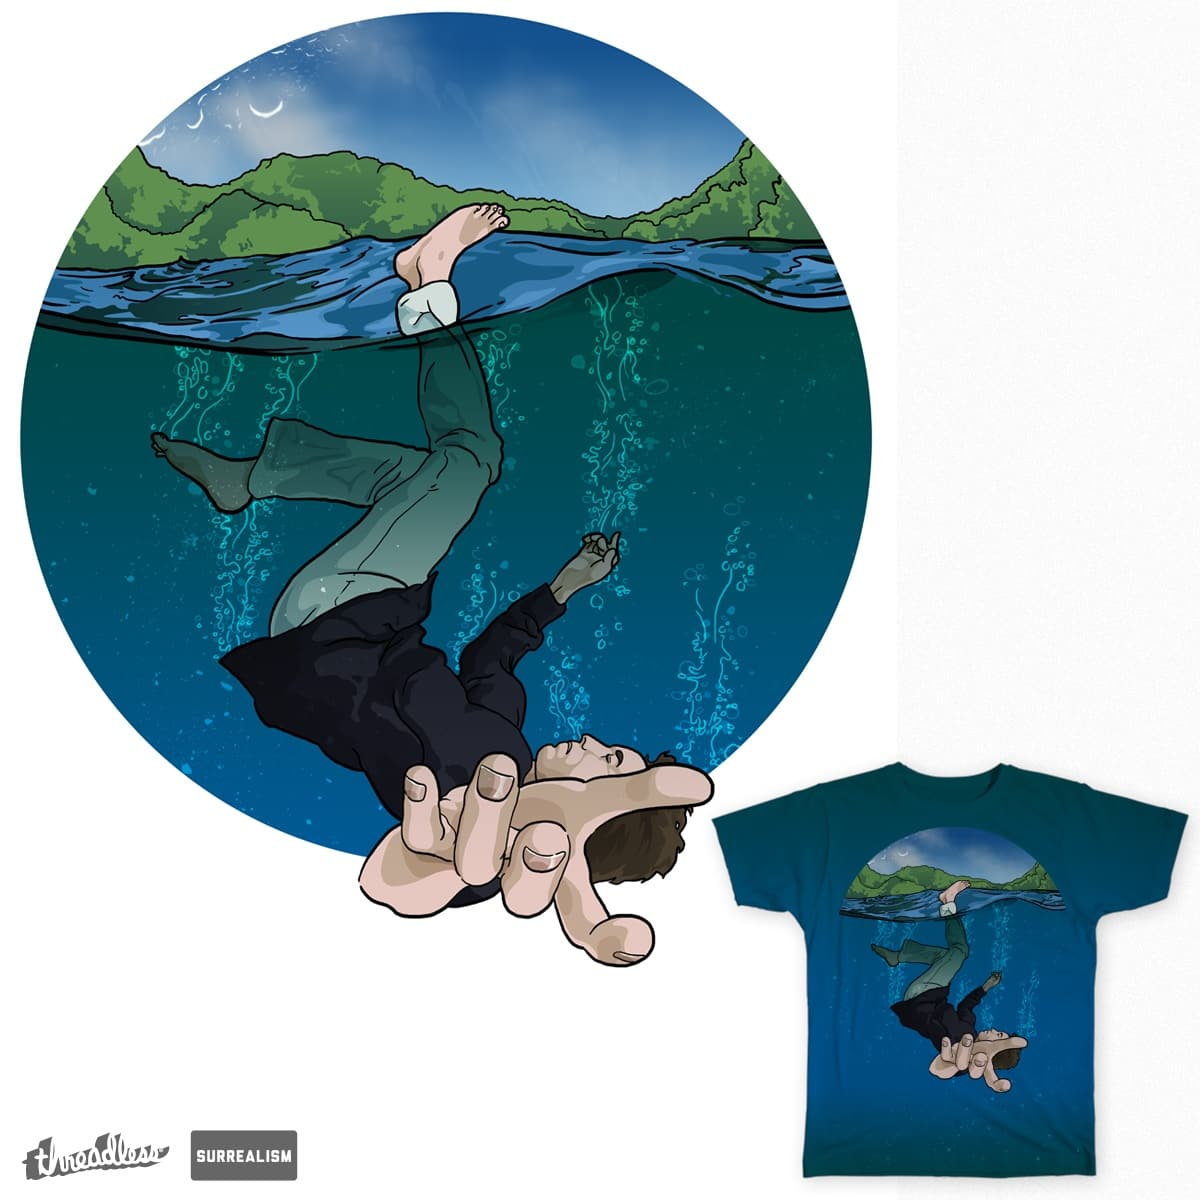 Just Because You Stopped Sinking  by DapperDanSays on Threadless